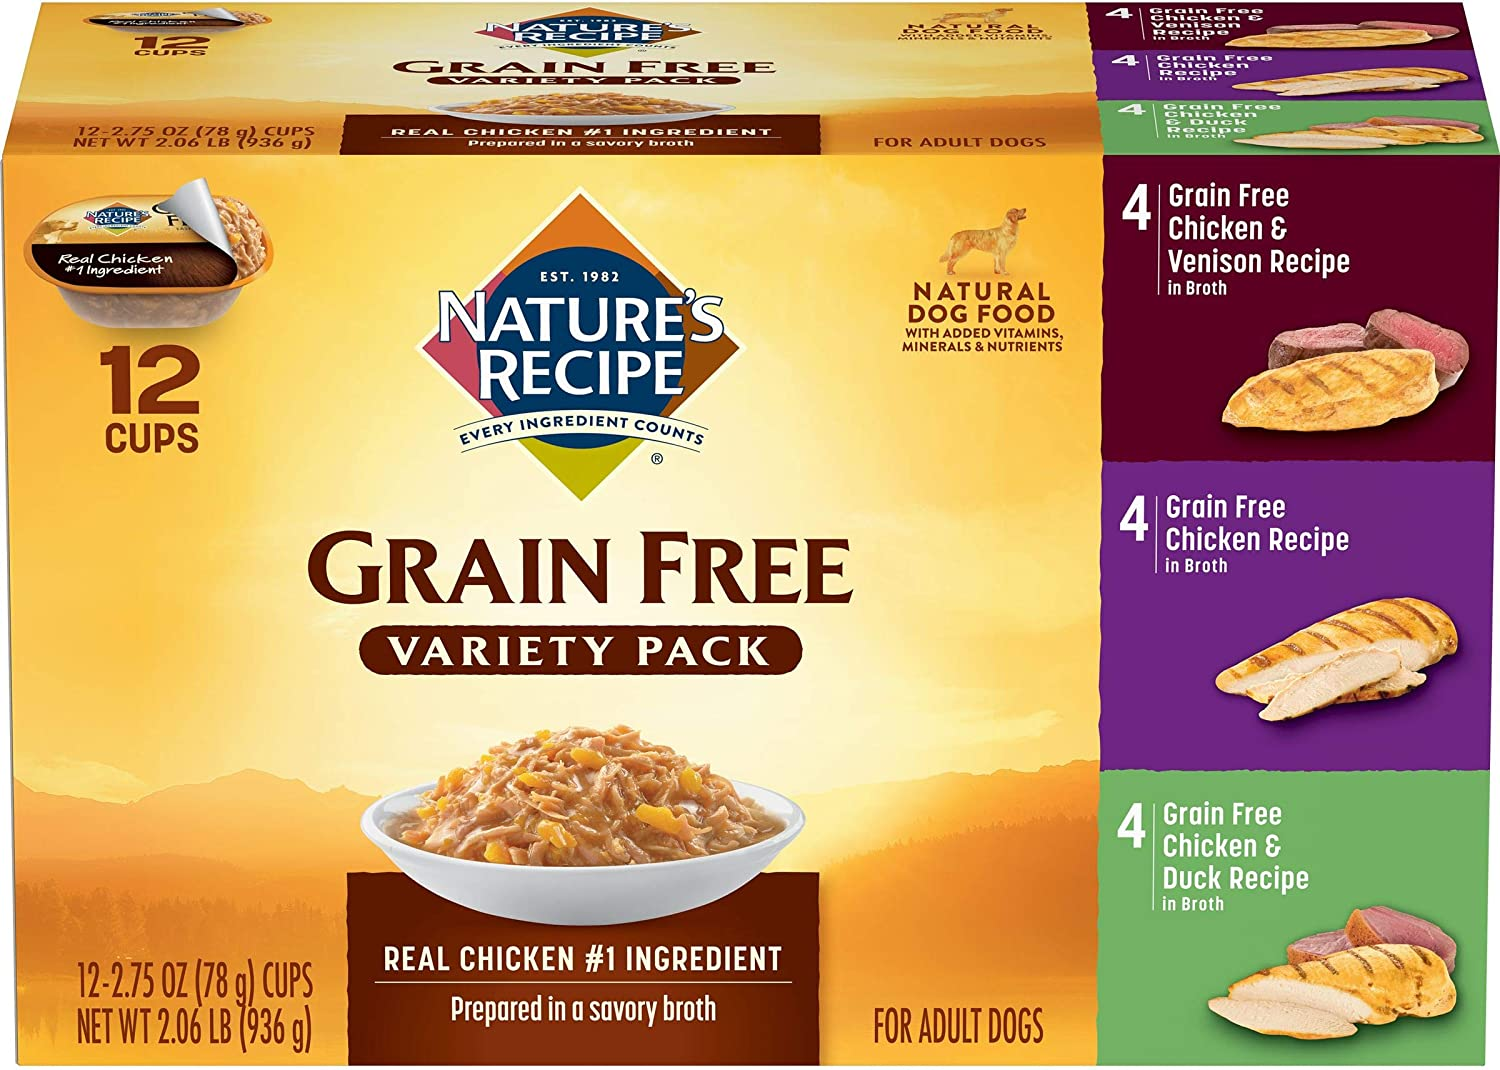 Nature's Recipe Original Chicken, Vension, Duck Recipe Variety Pack Wet Dog Food